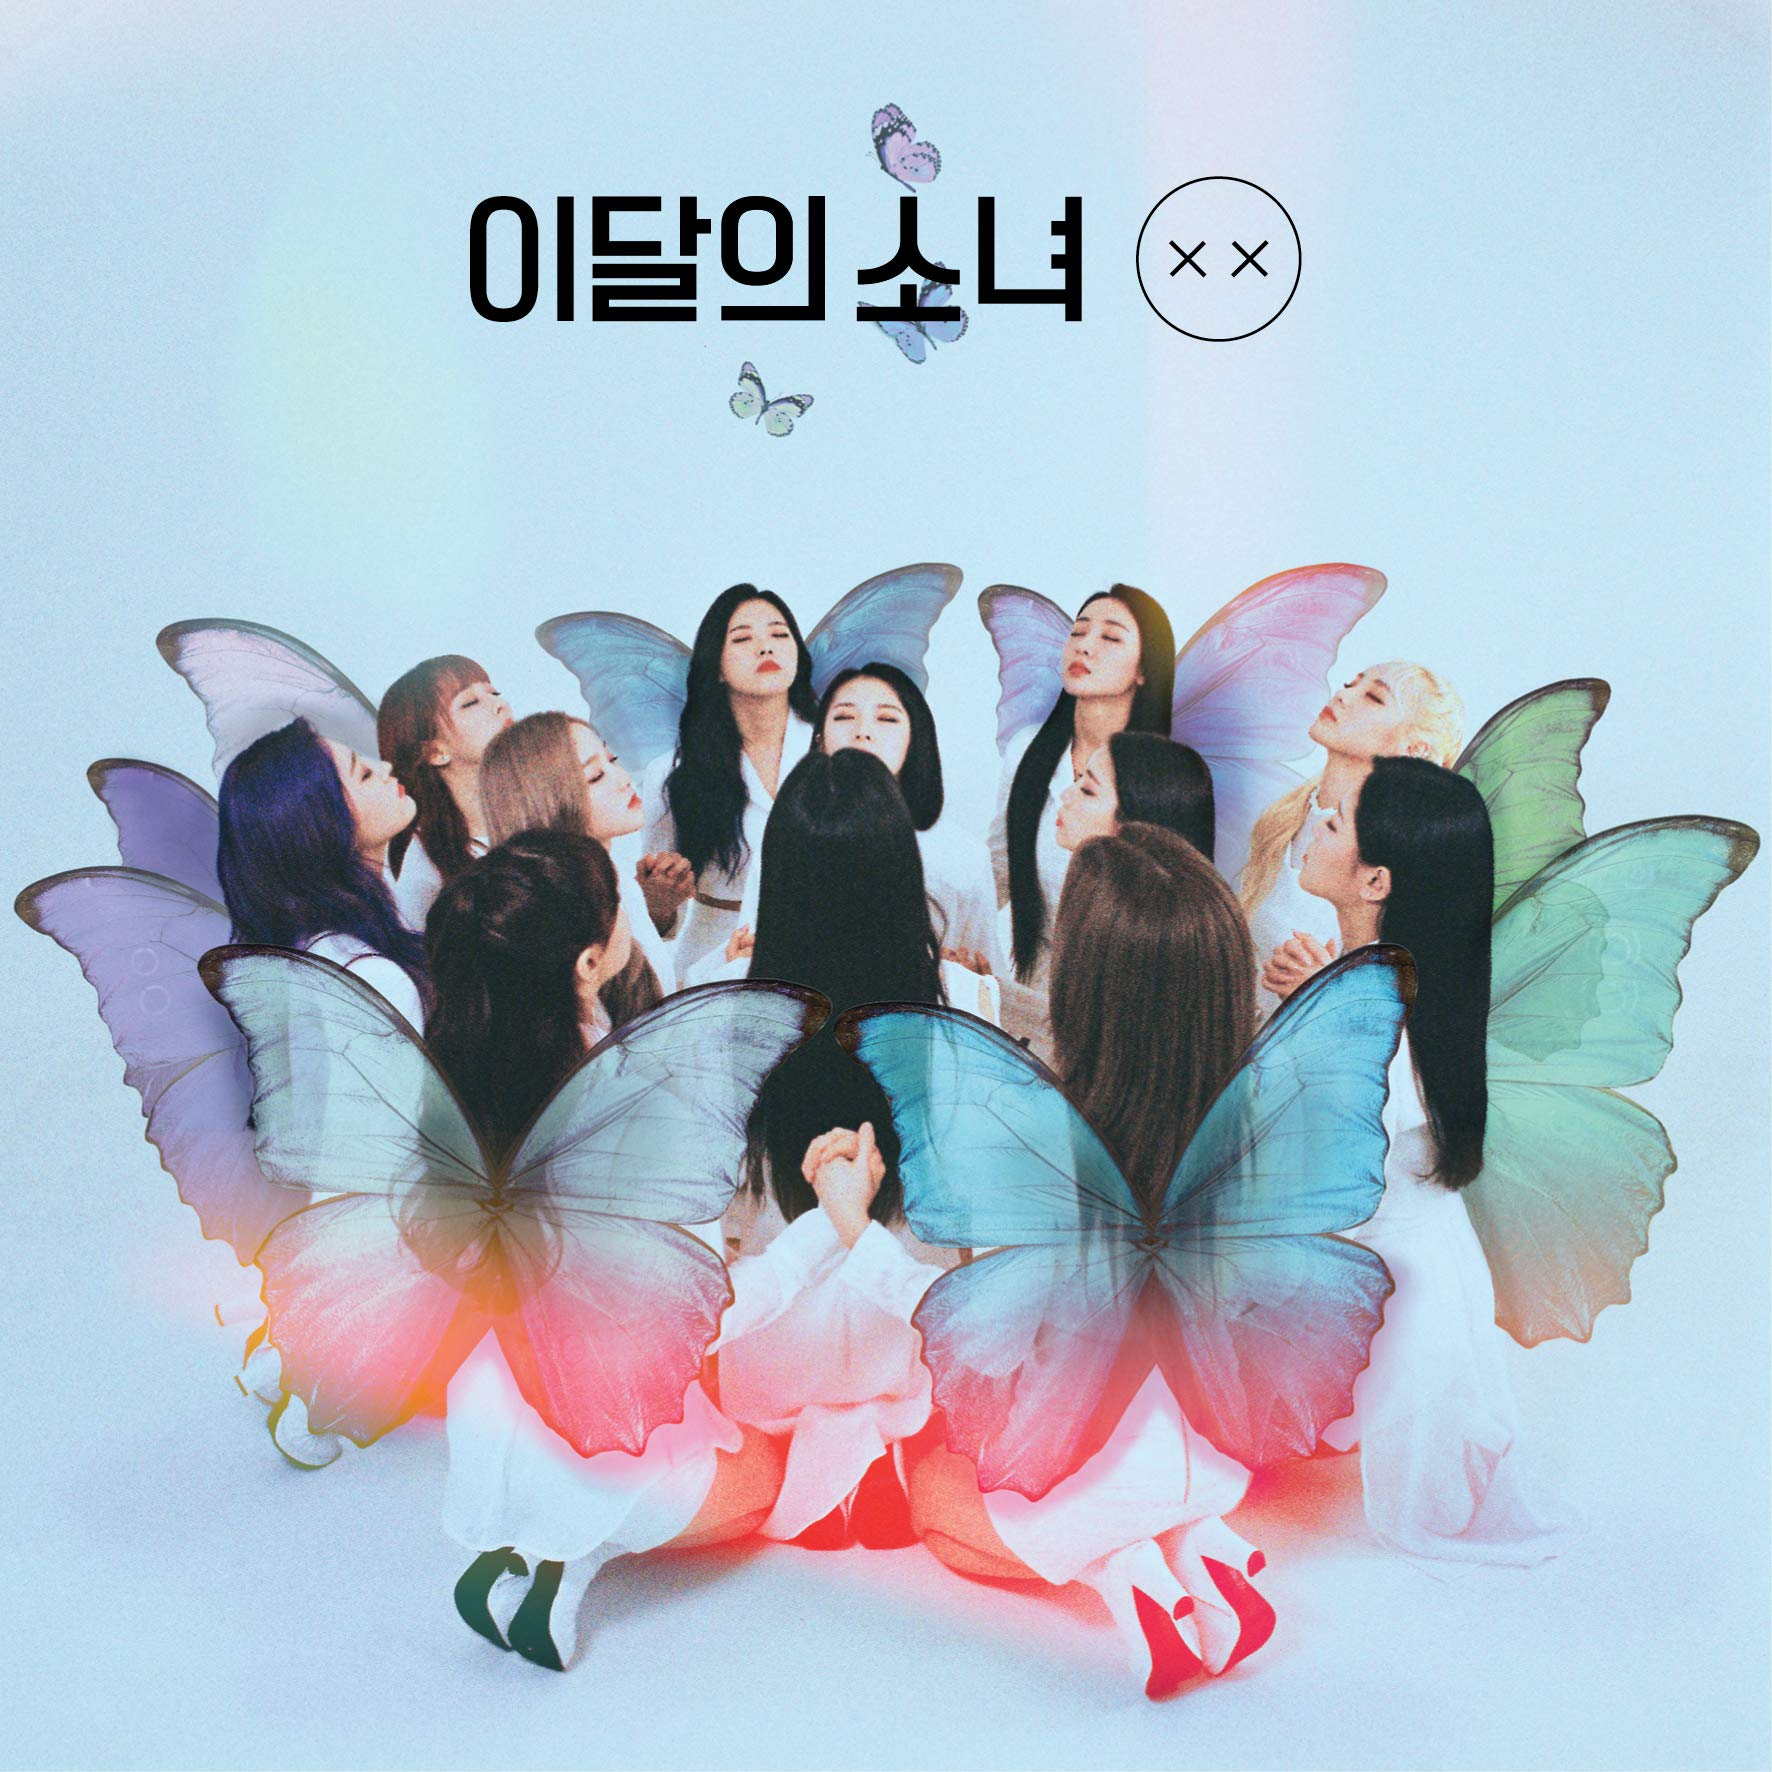 Monthly Girl LOONA - X X (Debut Mini Repackage) [Limited A ver.] CD+Booklet+1Photocard+Folded Poster+Double Side Extra Photocards Set